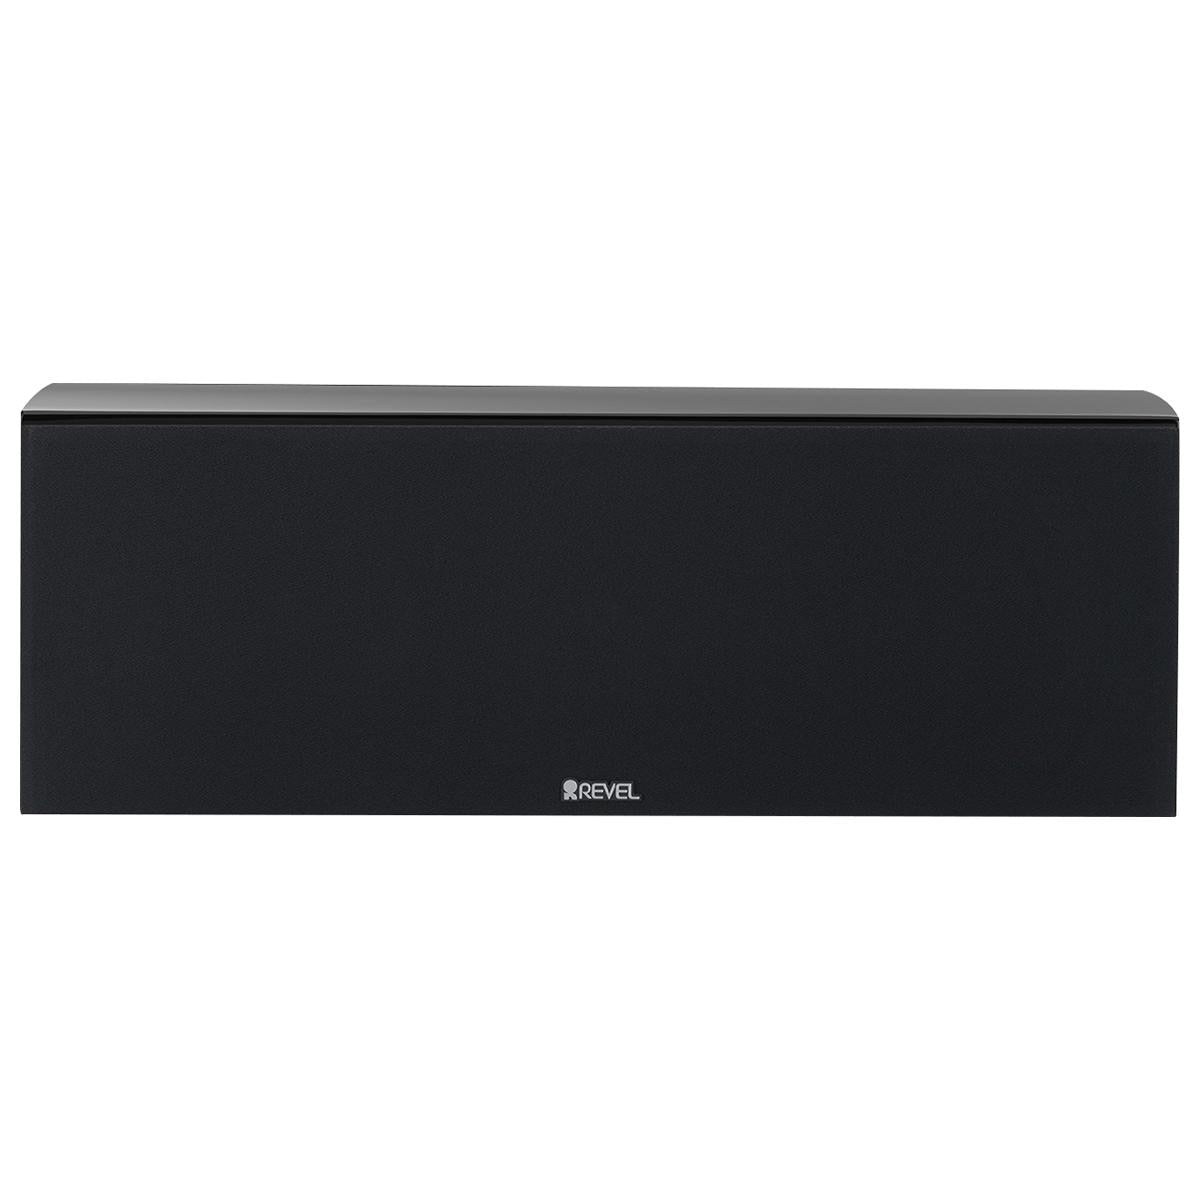 Revel Concerta2 C25 - Centre Speaker, Revel, Centre Speaker - AVStore.in